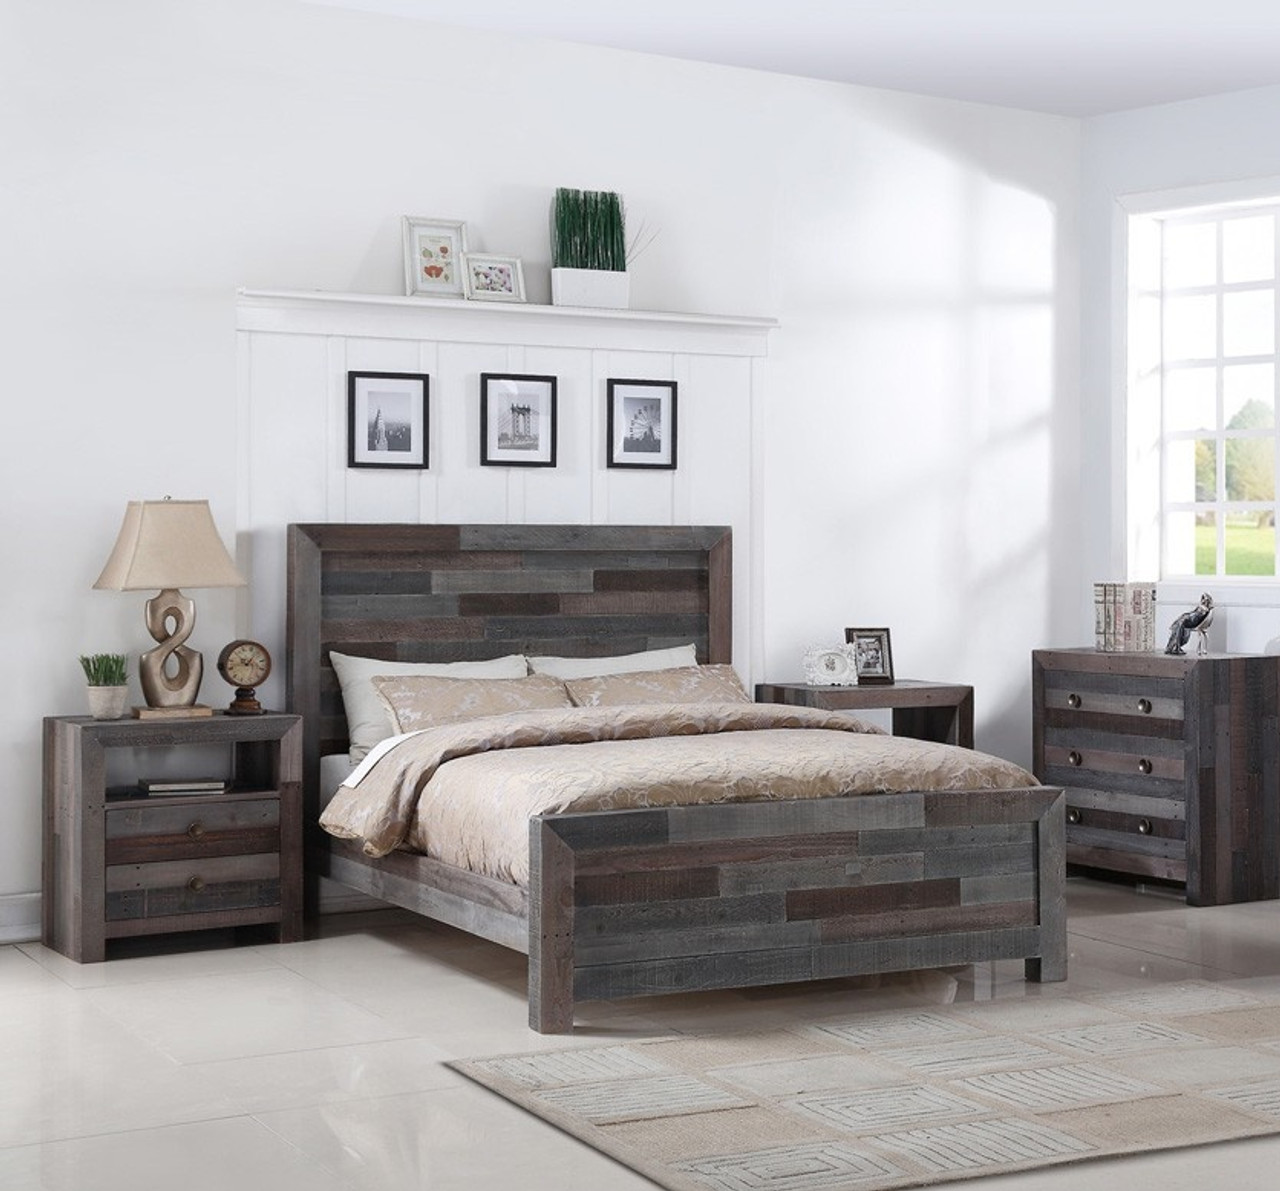 Beau Angora Reclaimed Wood Queen Size Platform Bed